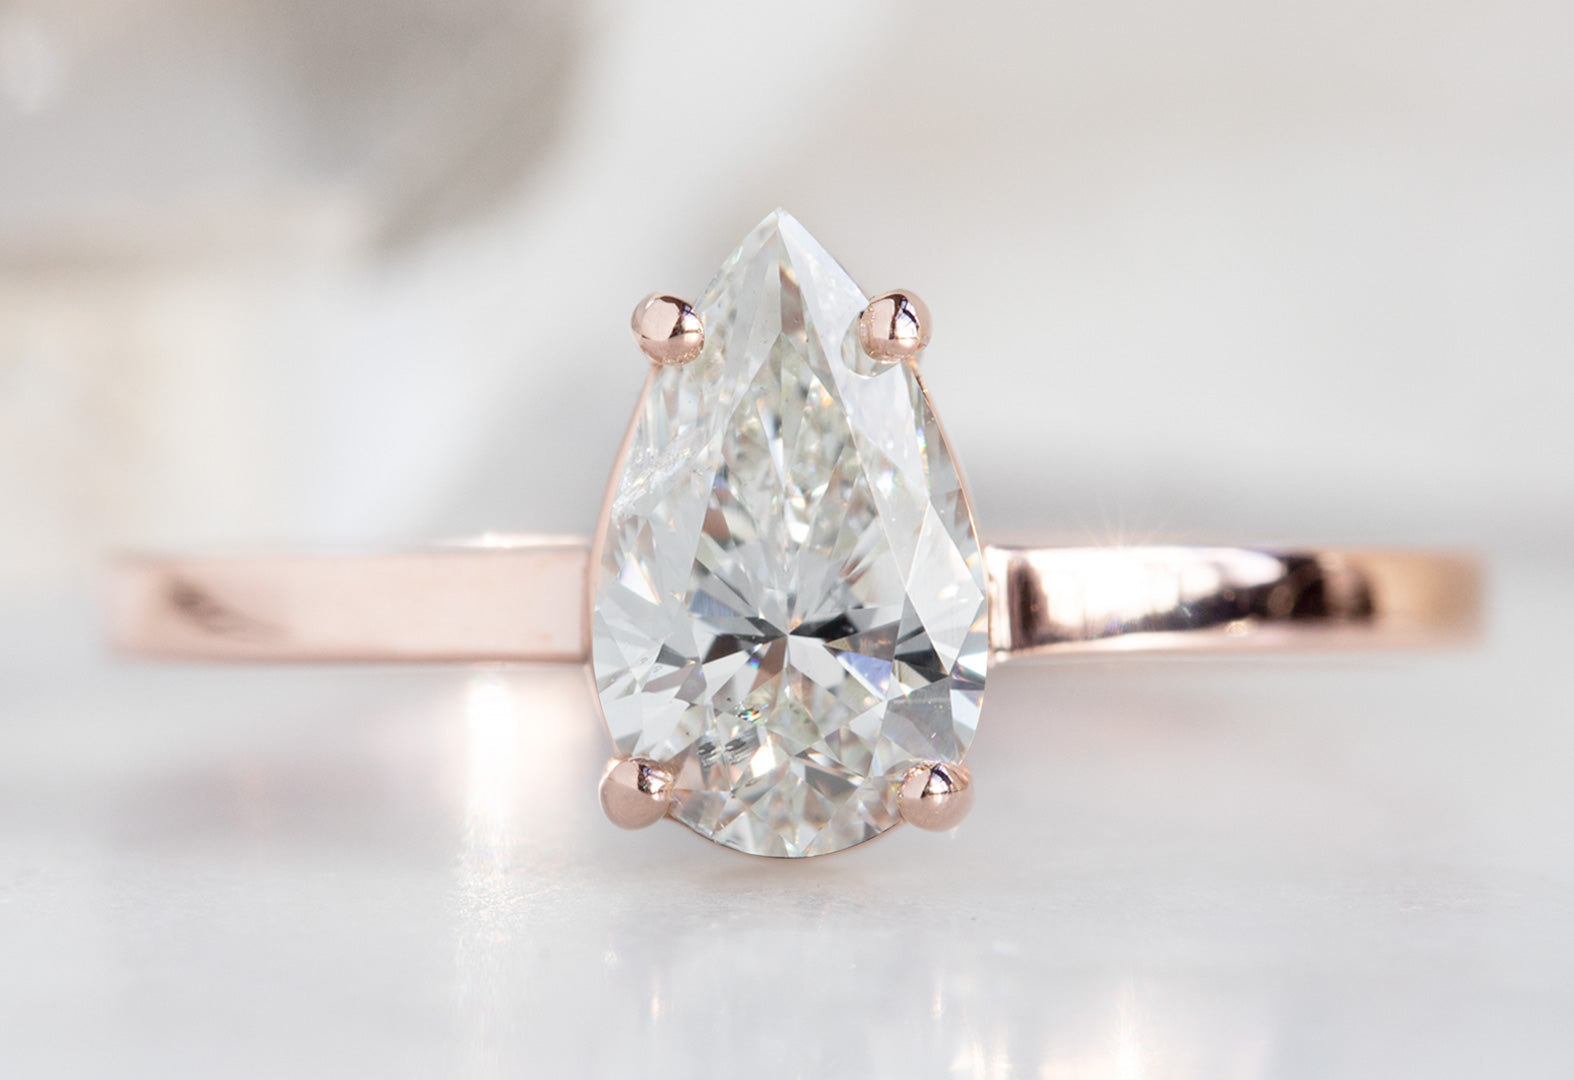 The Bryn Ring with a White Pear-Cut Diamond